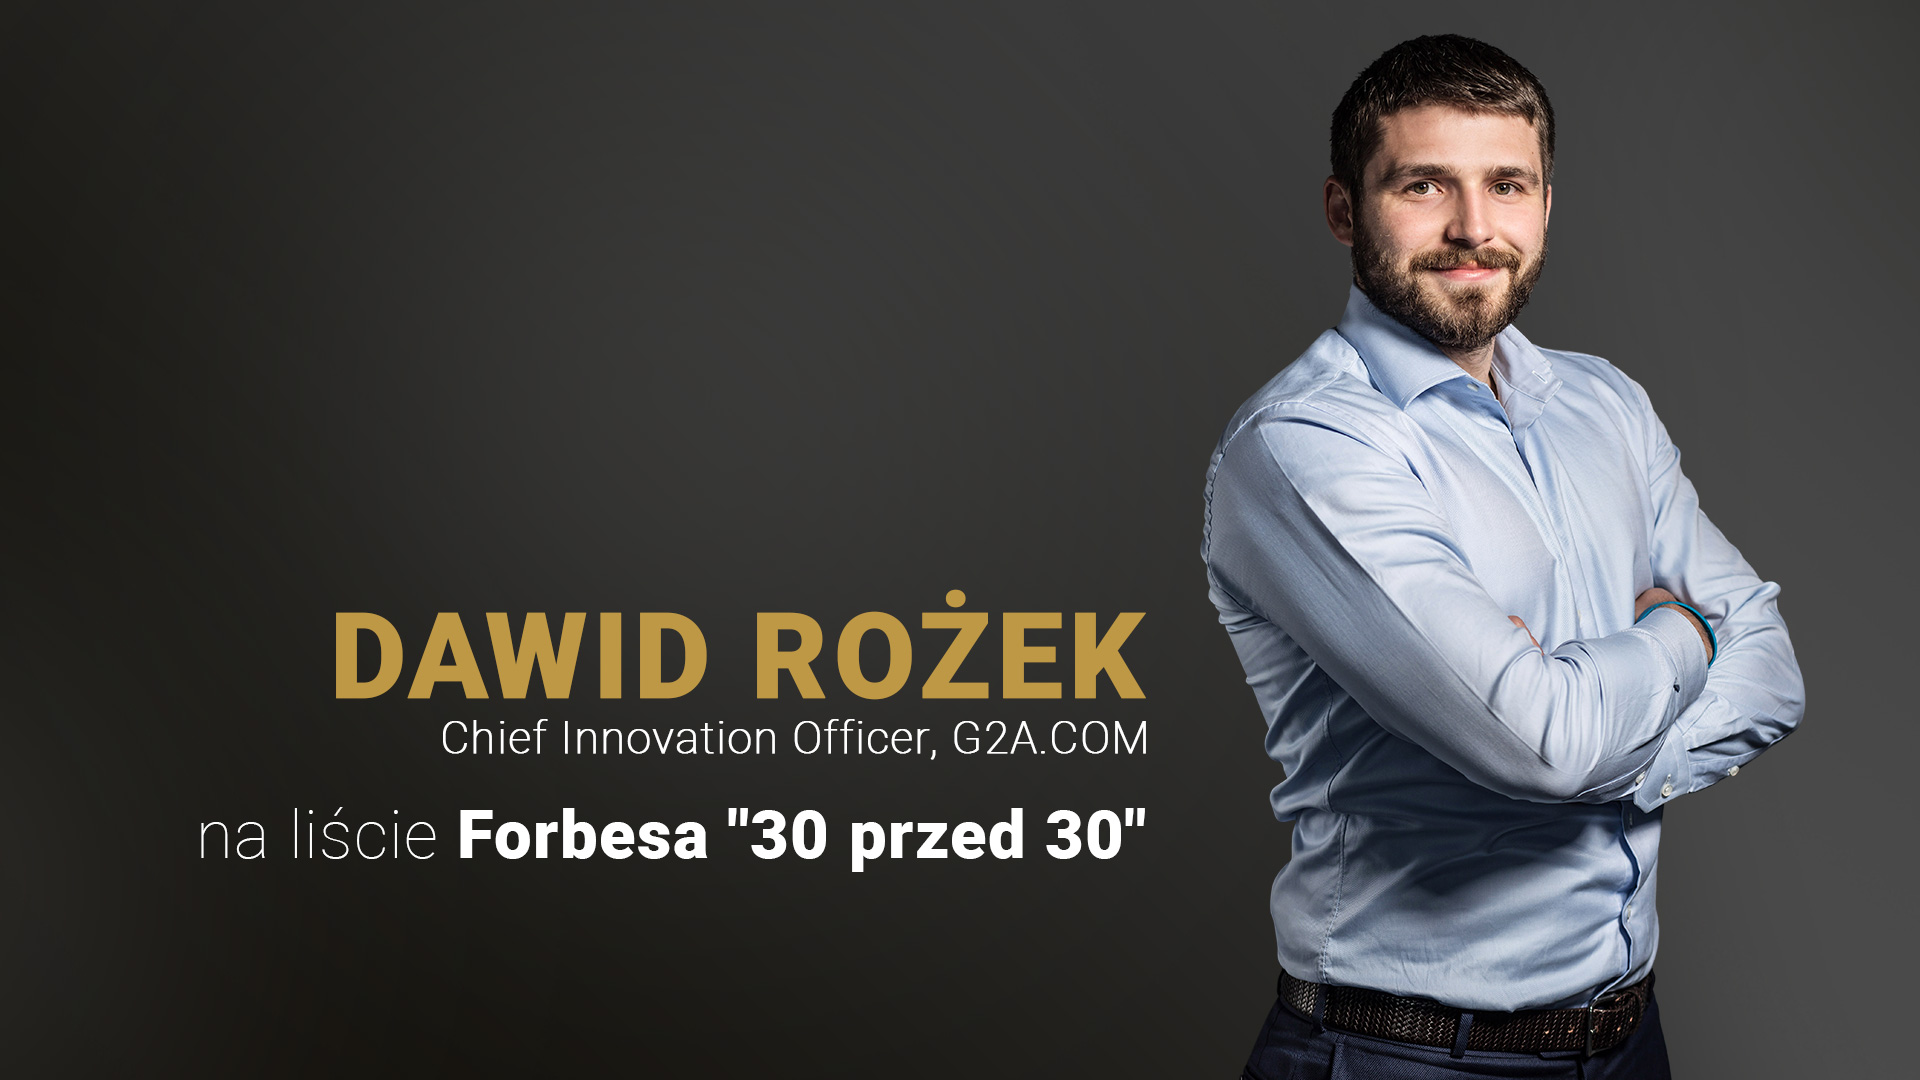 Forbes_30_przed_30_Dawid_Rozek_press_G2A.COM_1